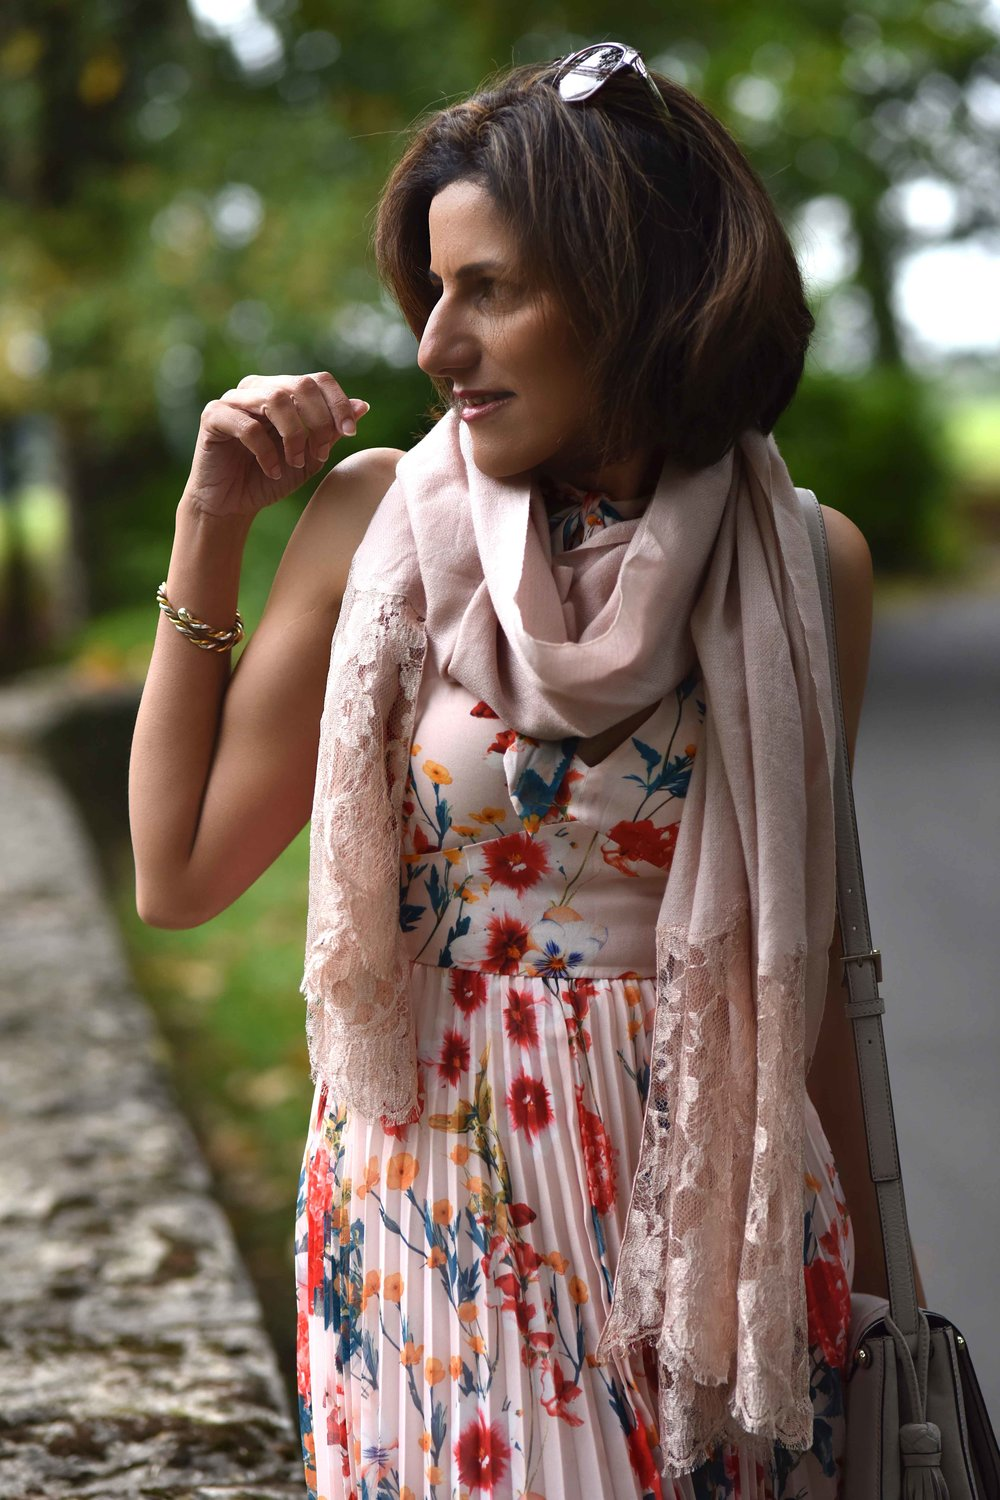 Karen Millen floral dress, Coworth Park Hotel, Ascot, U.K. Image©sourcingstyle.com